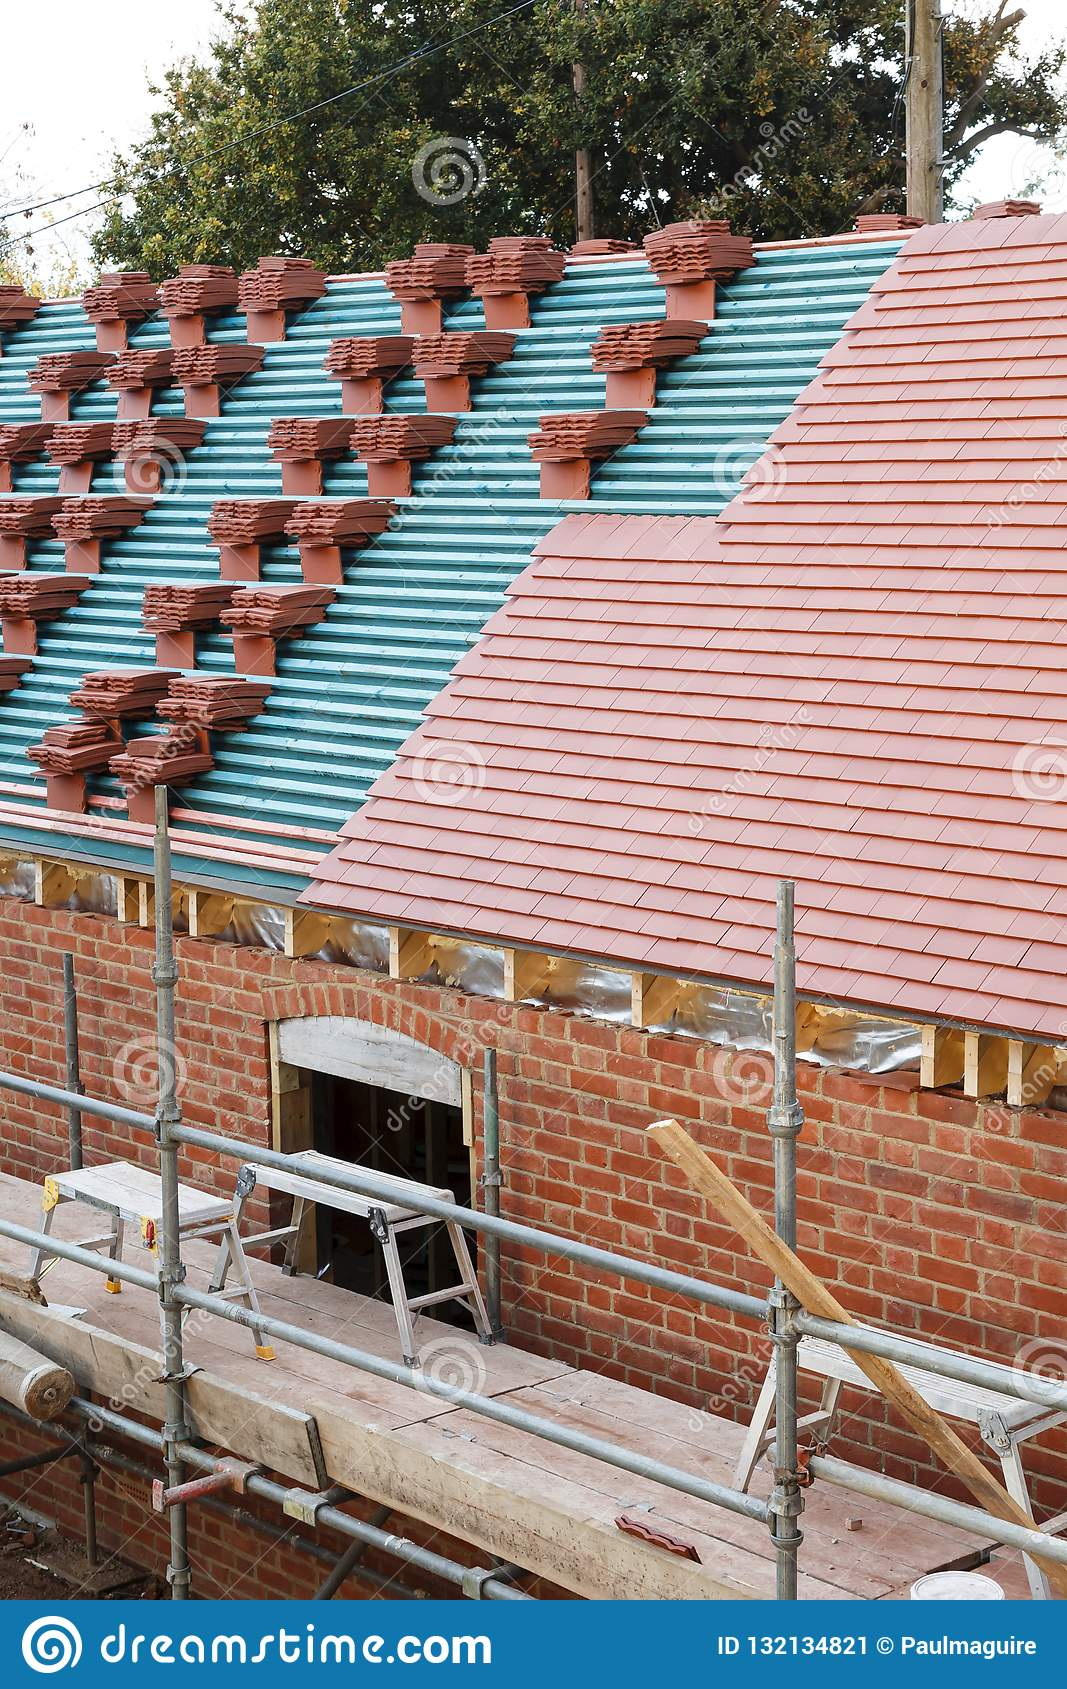 https www dreamstime com new clay tile roof building site process being tiled plain tiles image132134821